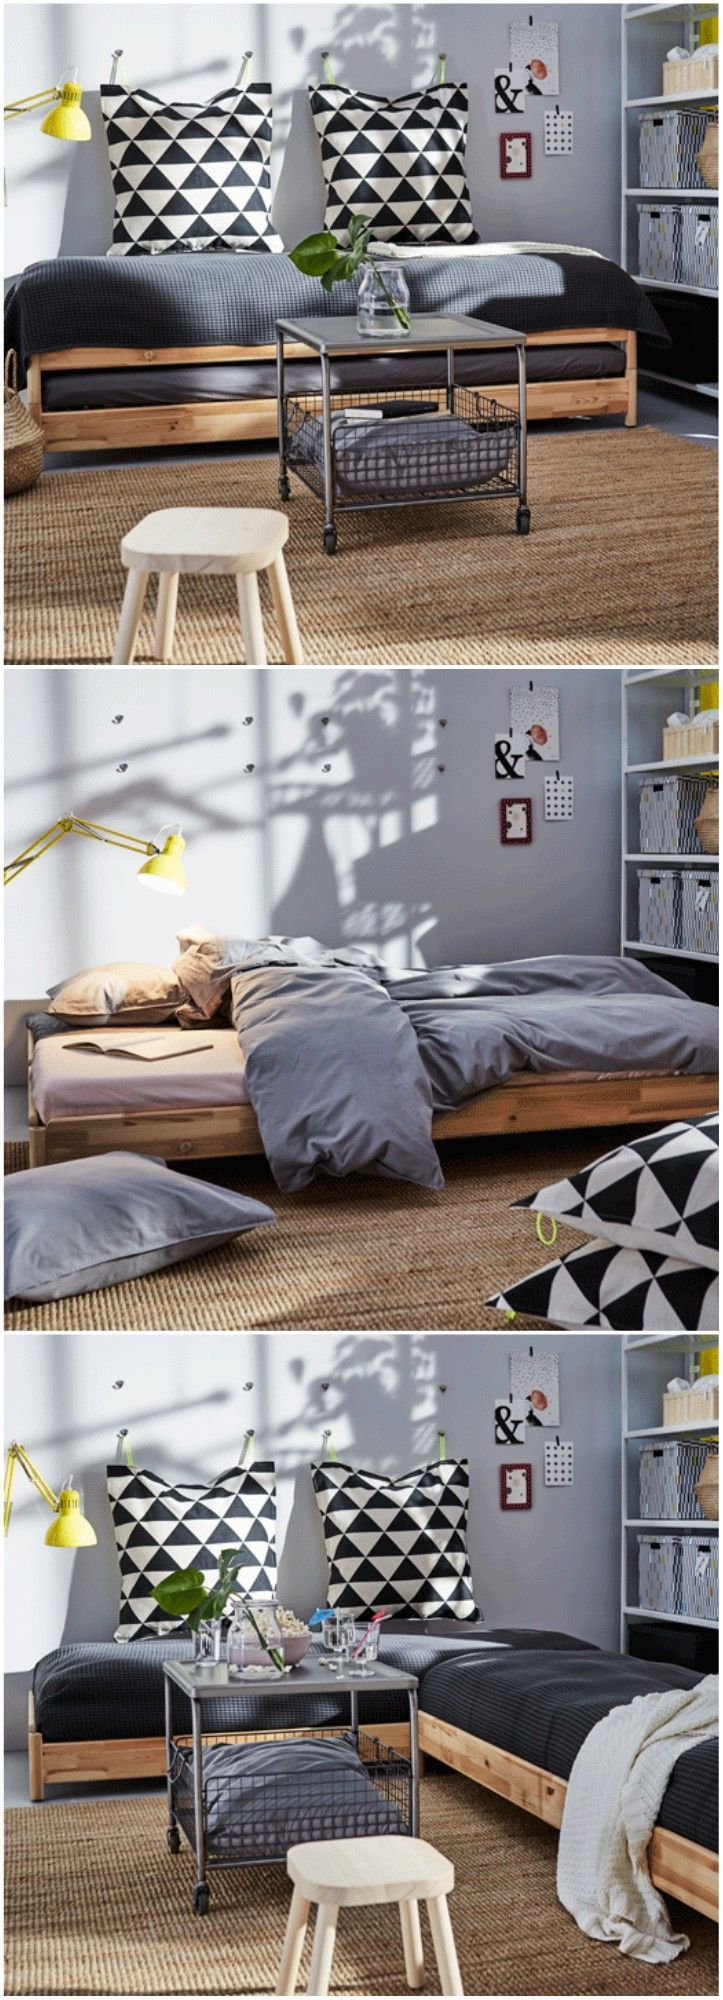 This stackable bed from IKEA is a brilliant solution for